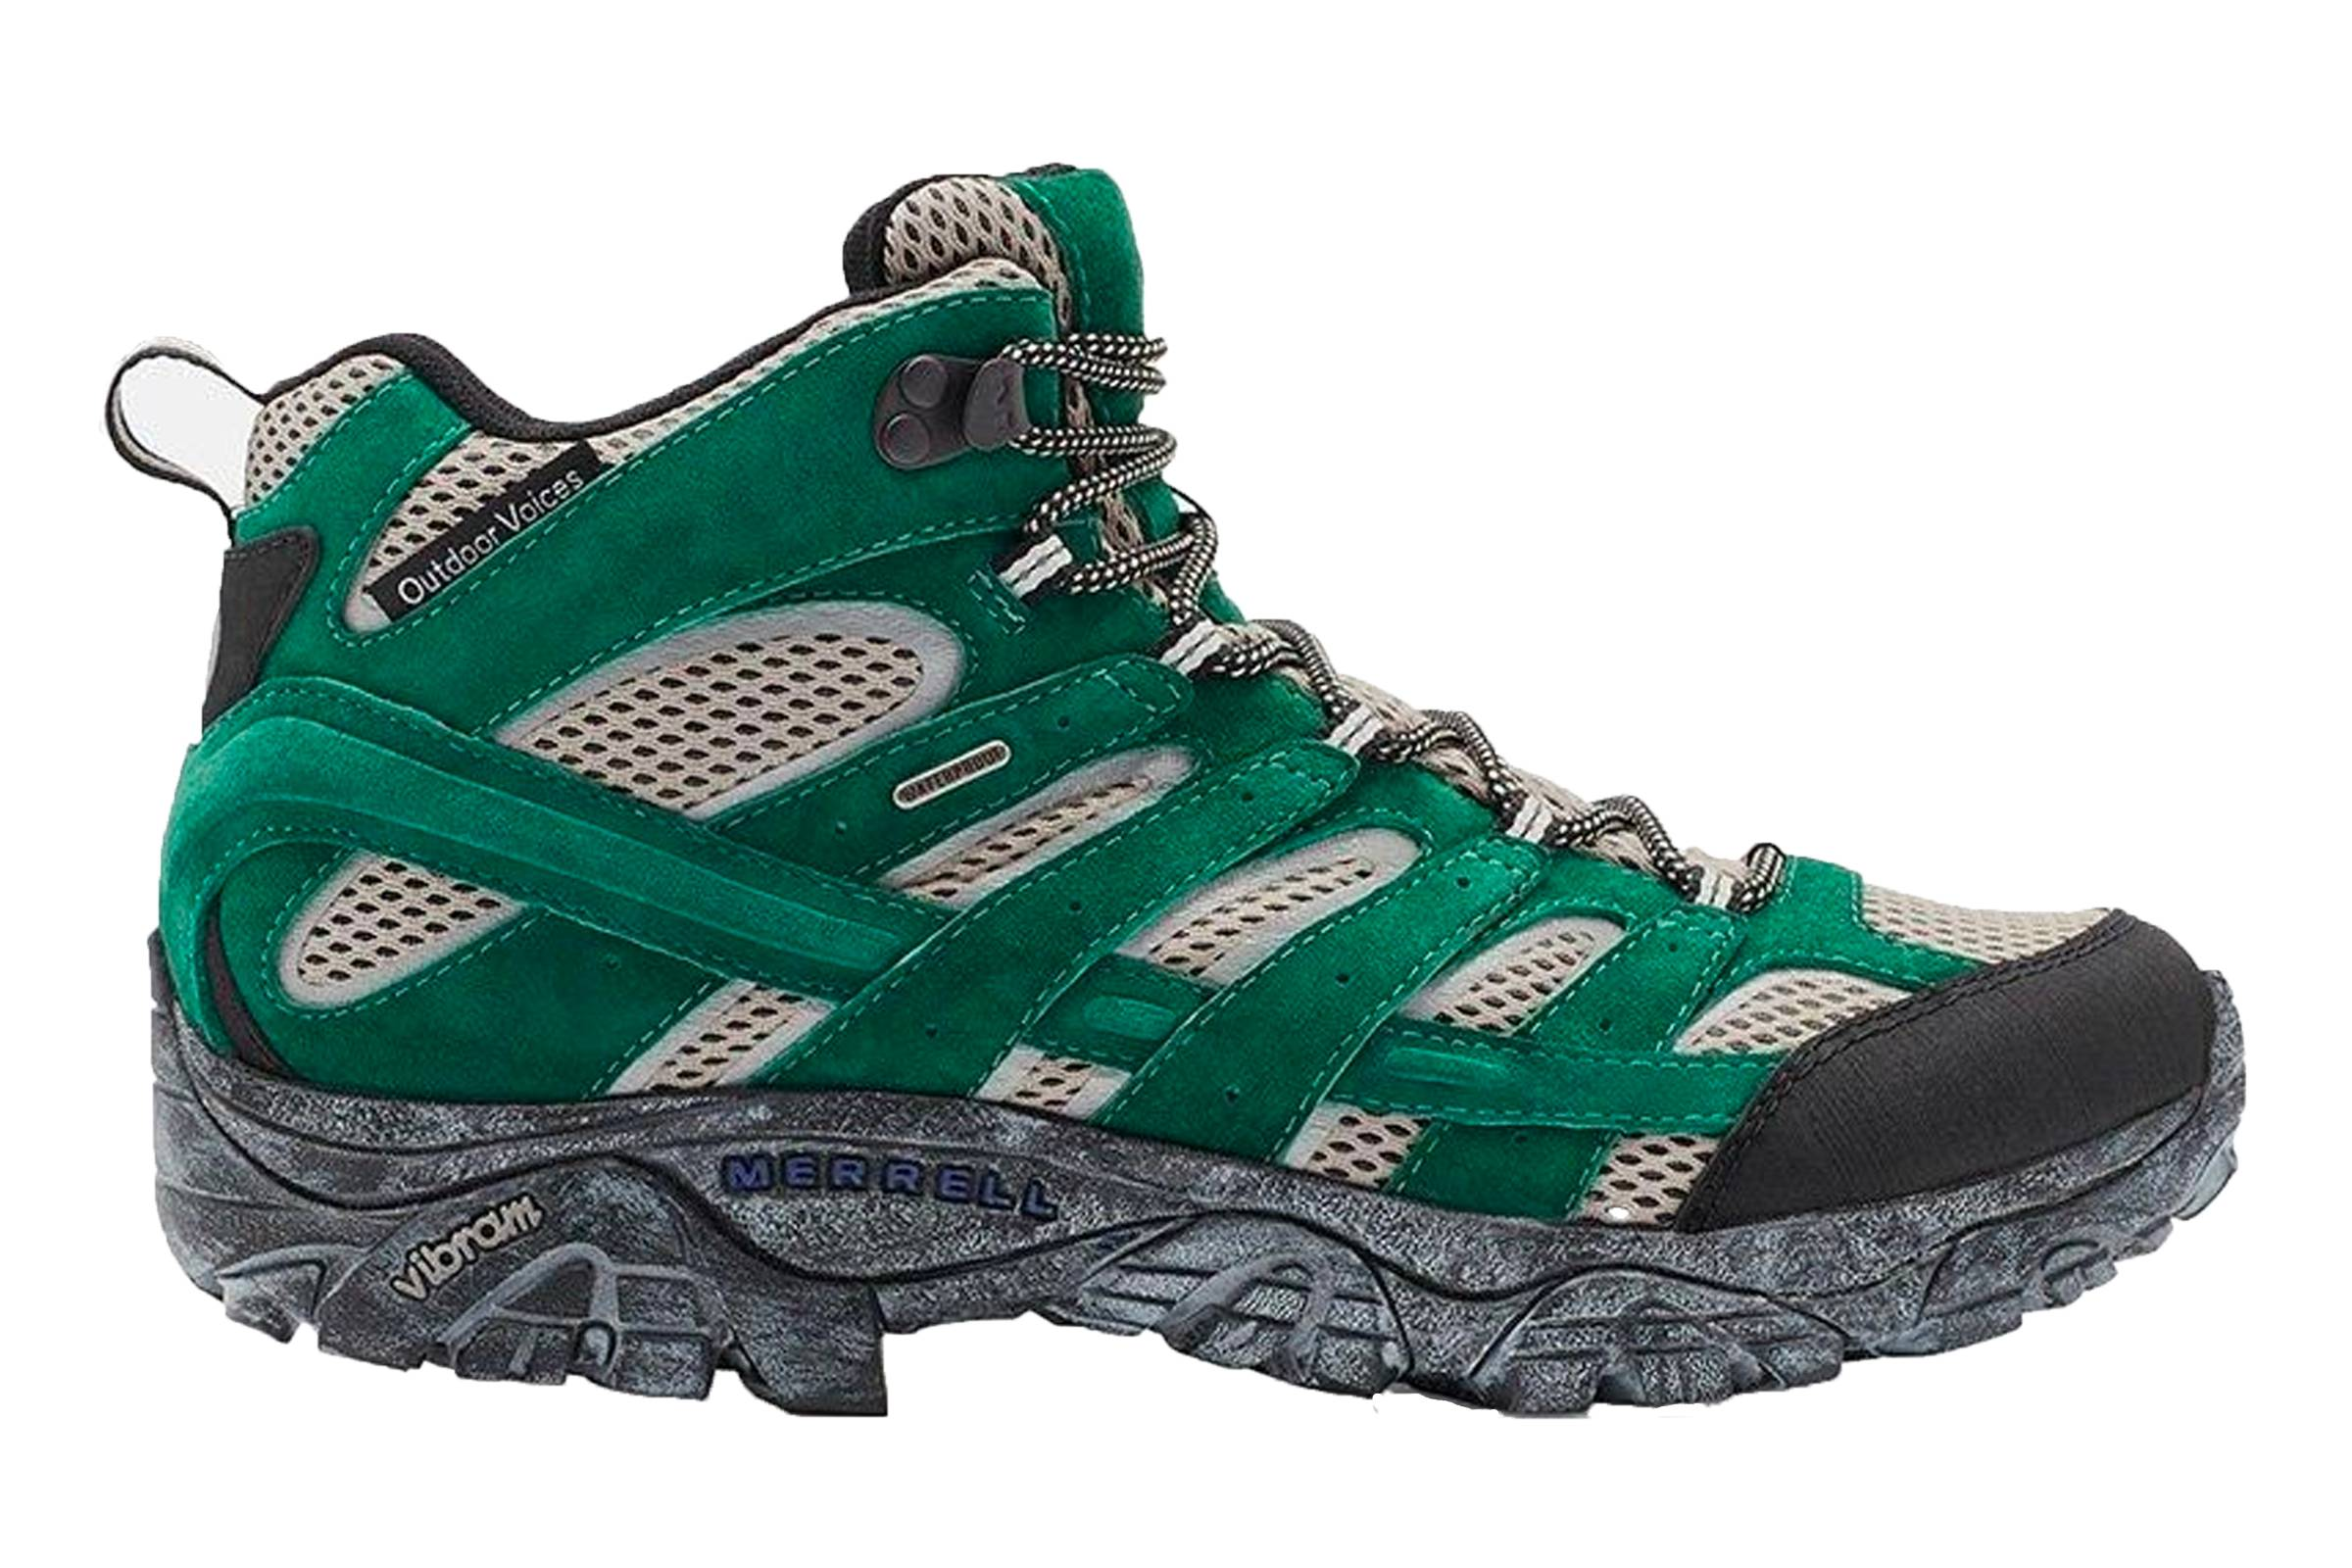 Outdoor Voices x Merrell Moab 2 Mid